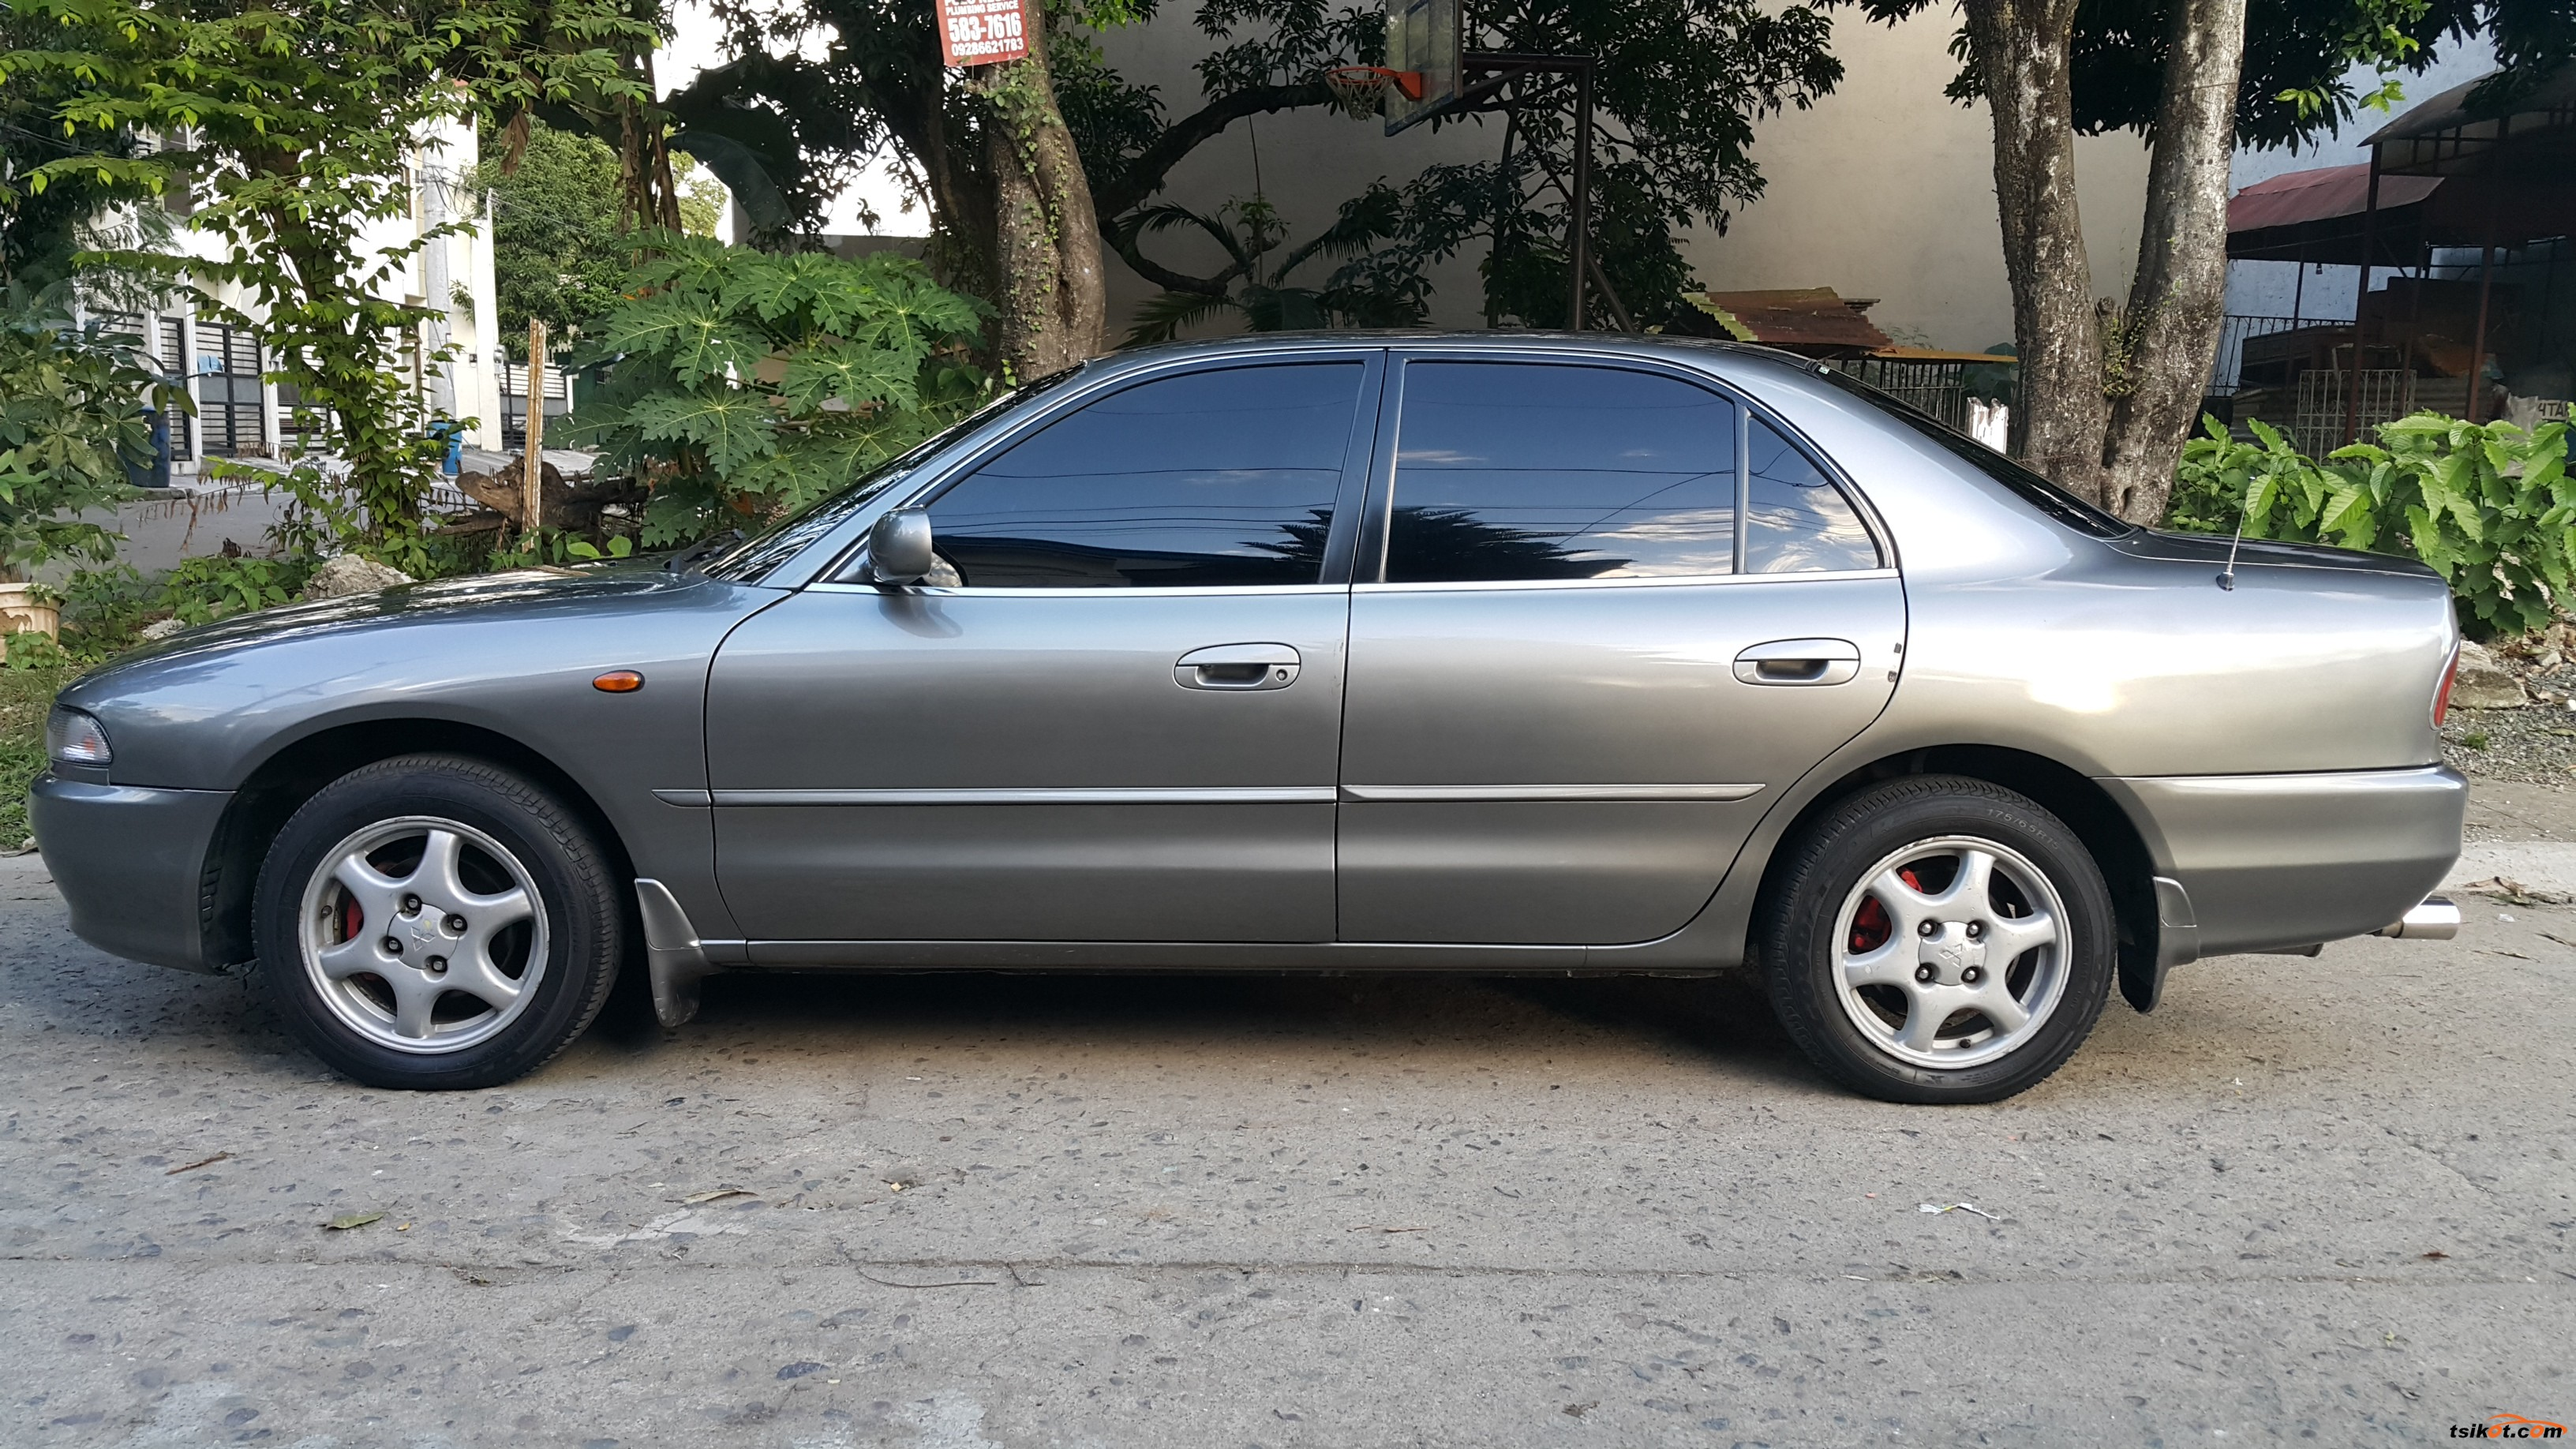 Galant Alarm Manual Fuse Box 2000 Mitsubishi Array 1994 Car For Sale Calabarzon Rh Tsikot Com